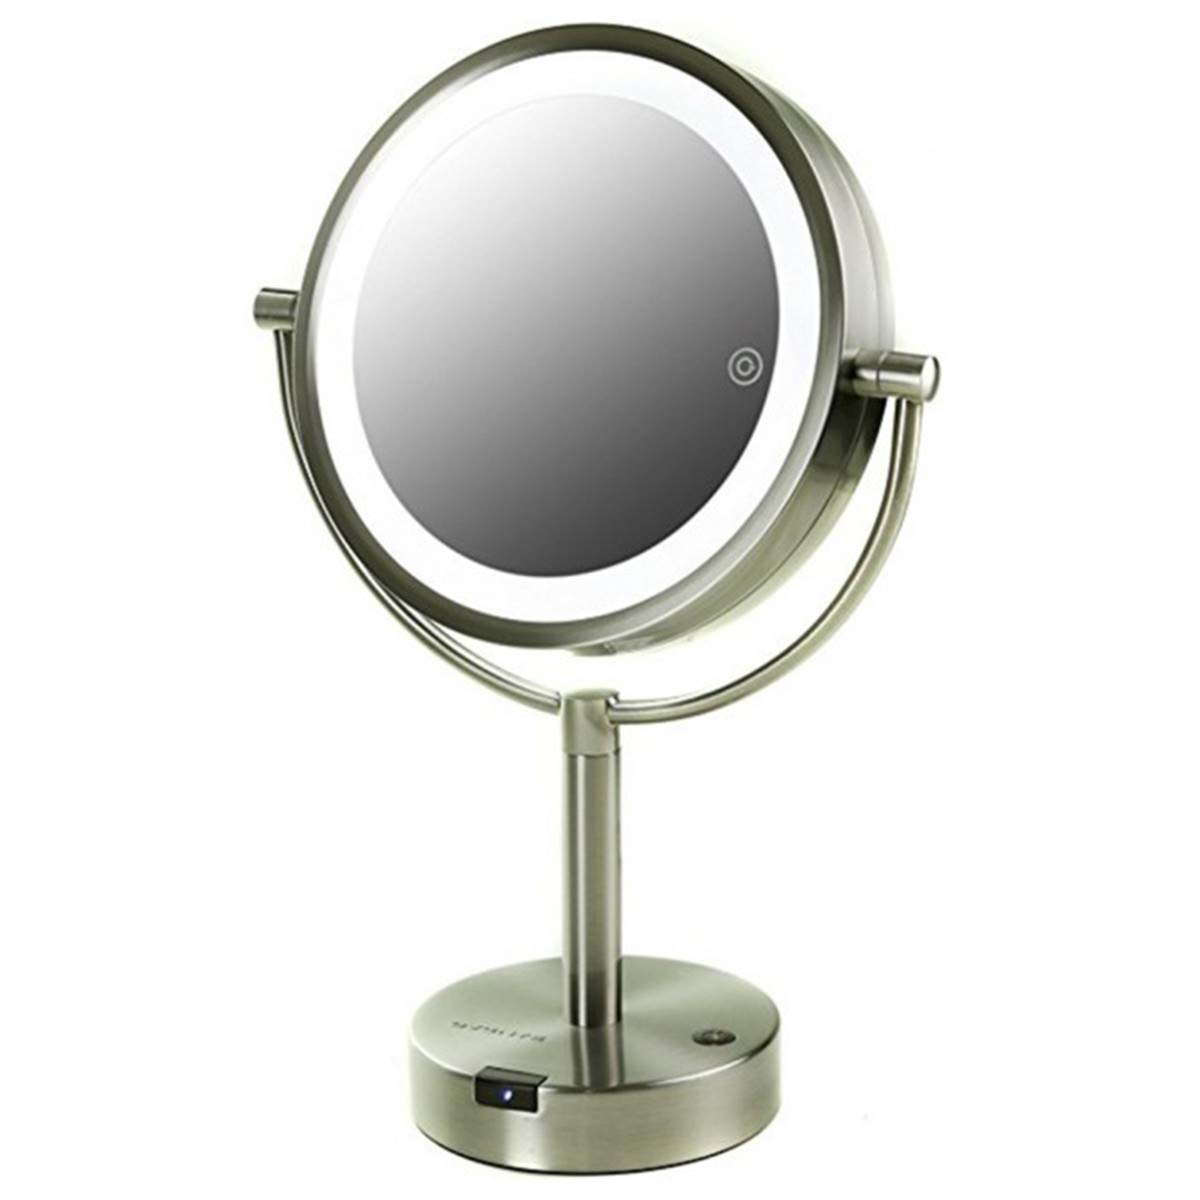 Ovente Table Top Makeup Vanity 360 Degree Rotation Mirror 8.5 Inch 1X, Full View 5X Magnification, 3 Tones LED Lights with Smart Touch Button, and USB Adapter Operated Nickel Brush MPTS8385BR1X5X